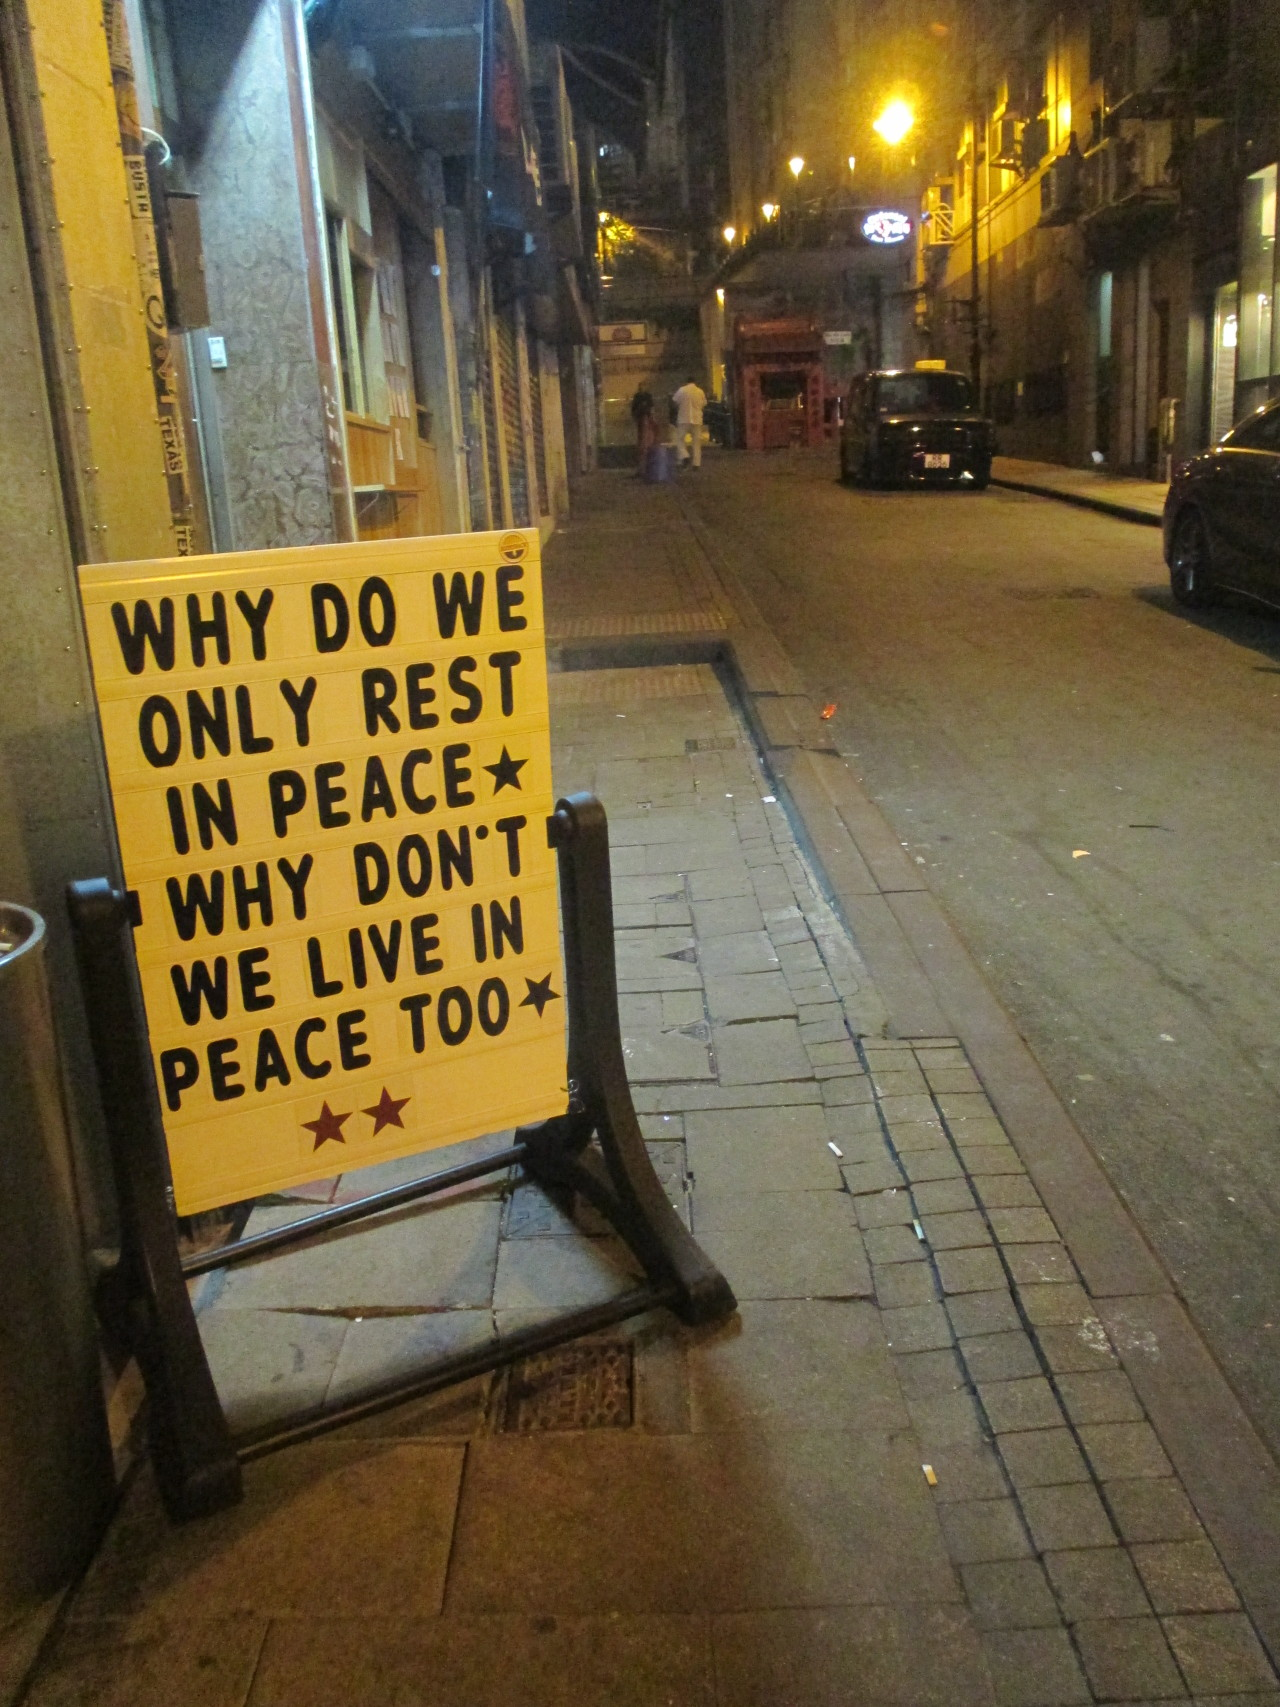 Why do we only rest in peace? Why don't live in peace too?